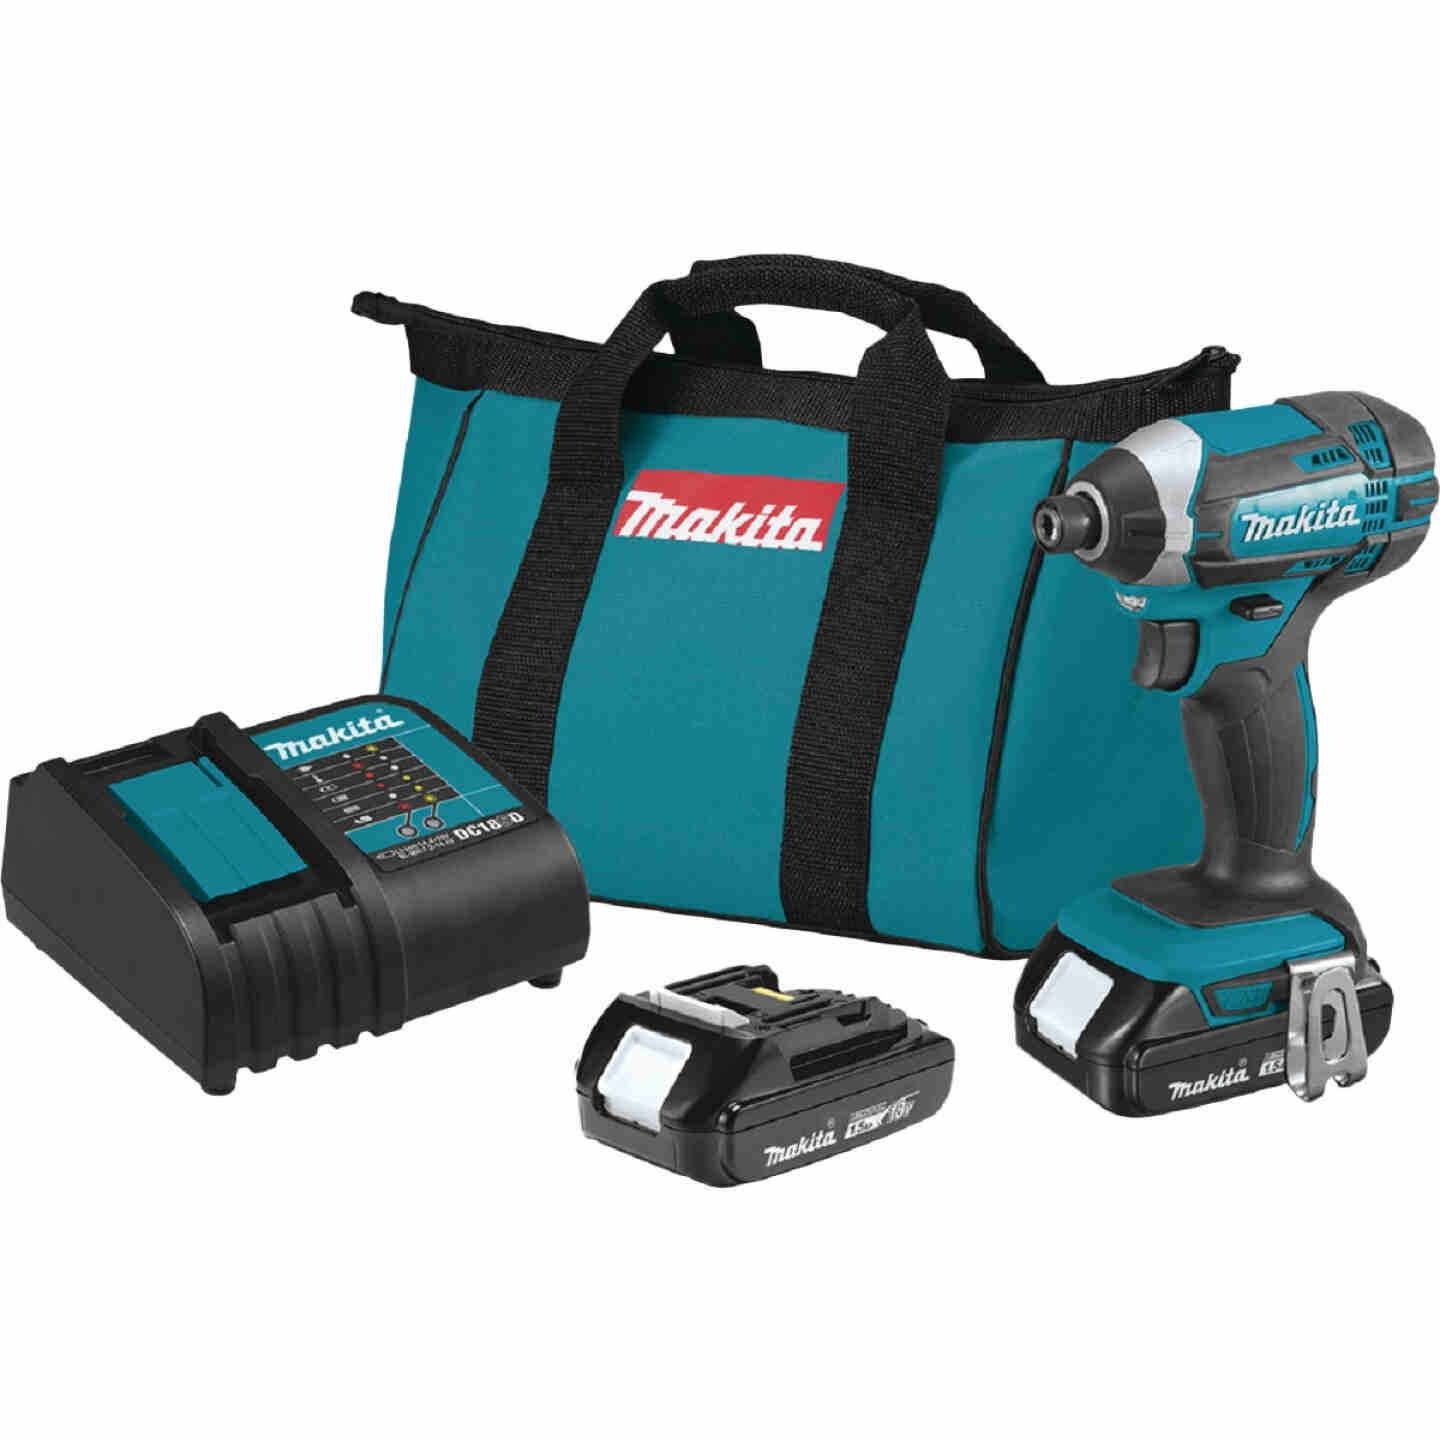 Makita 18 Volt Lithium-Ion 1/4 In. Hex Cordless Impact Driver Kit Image 1